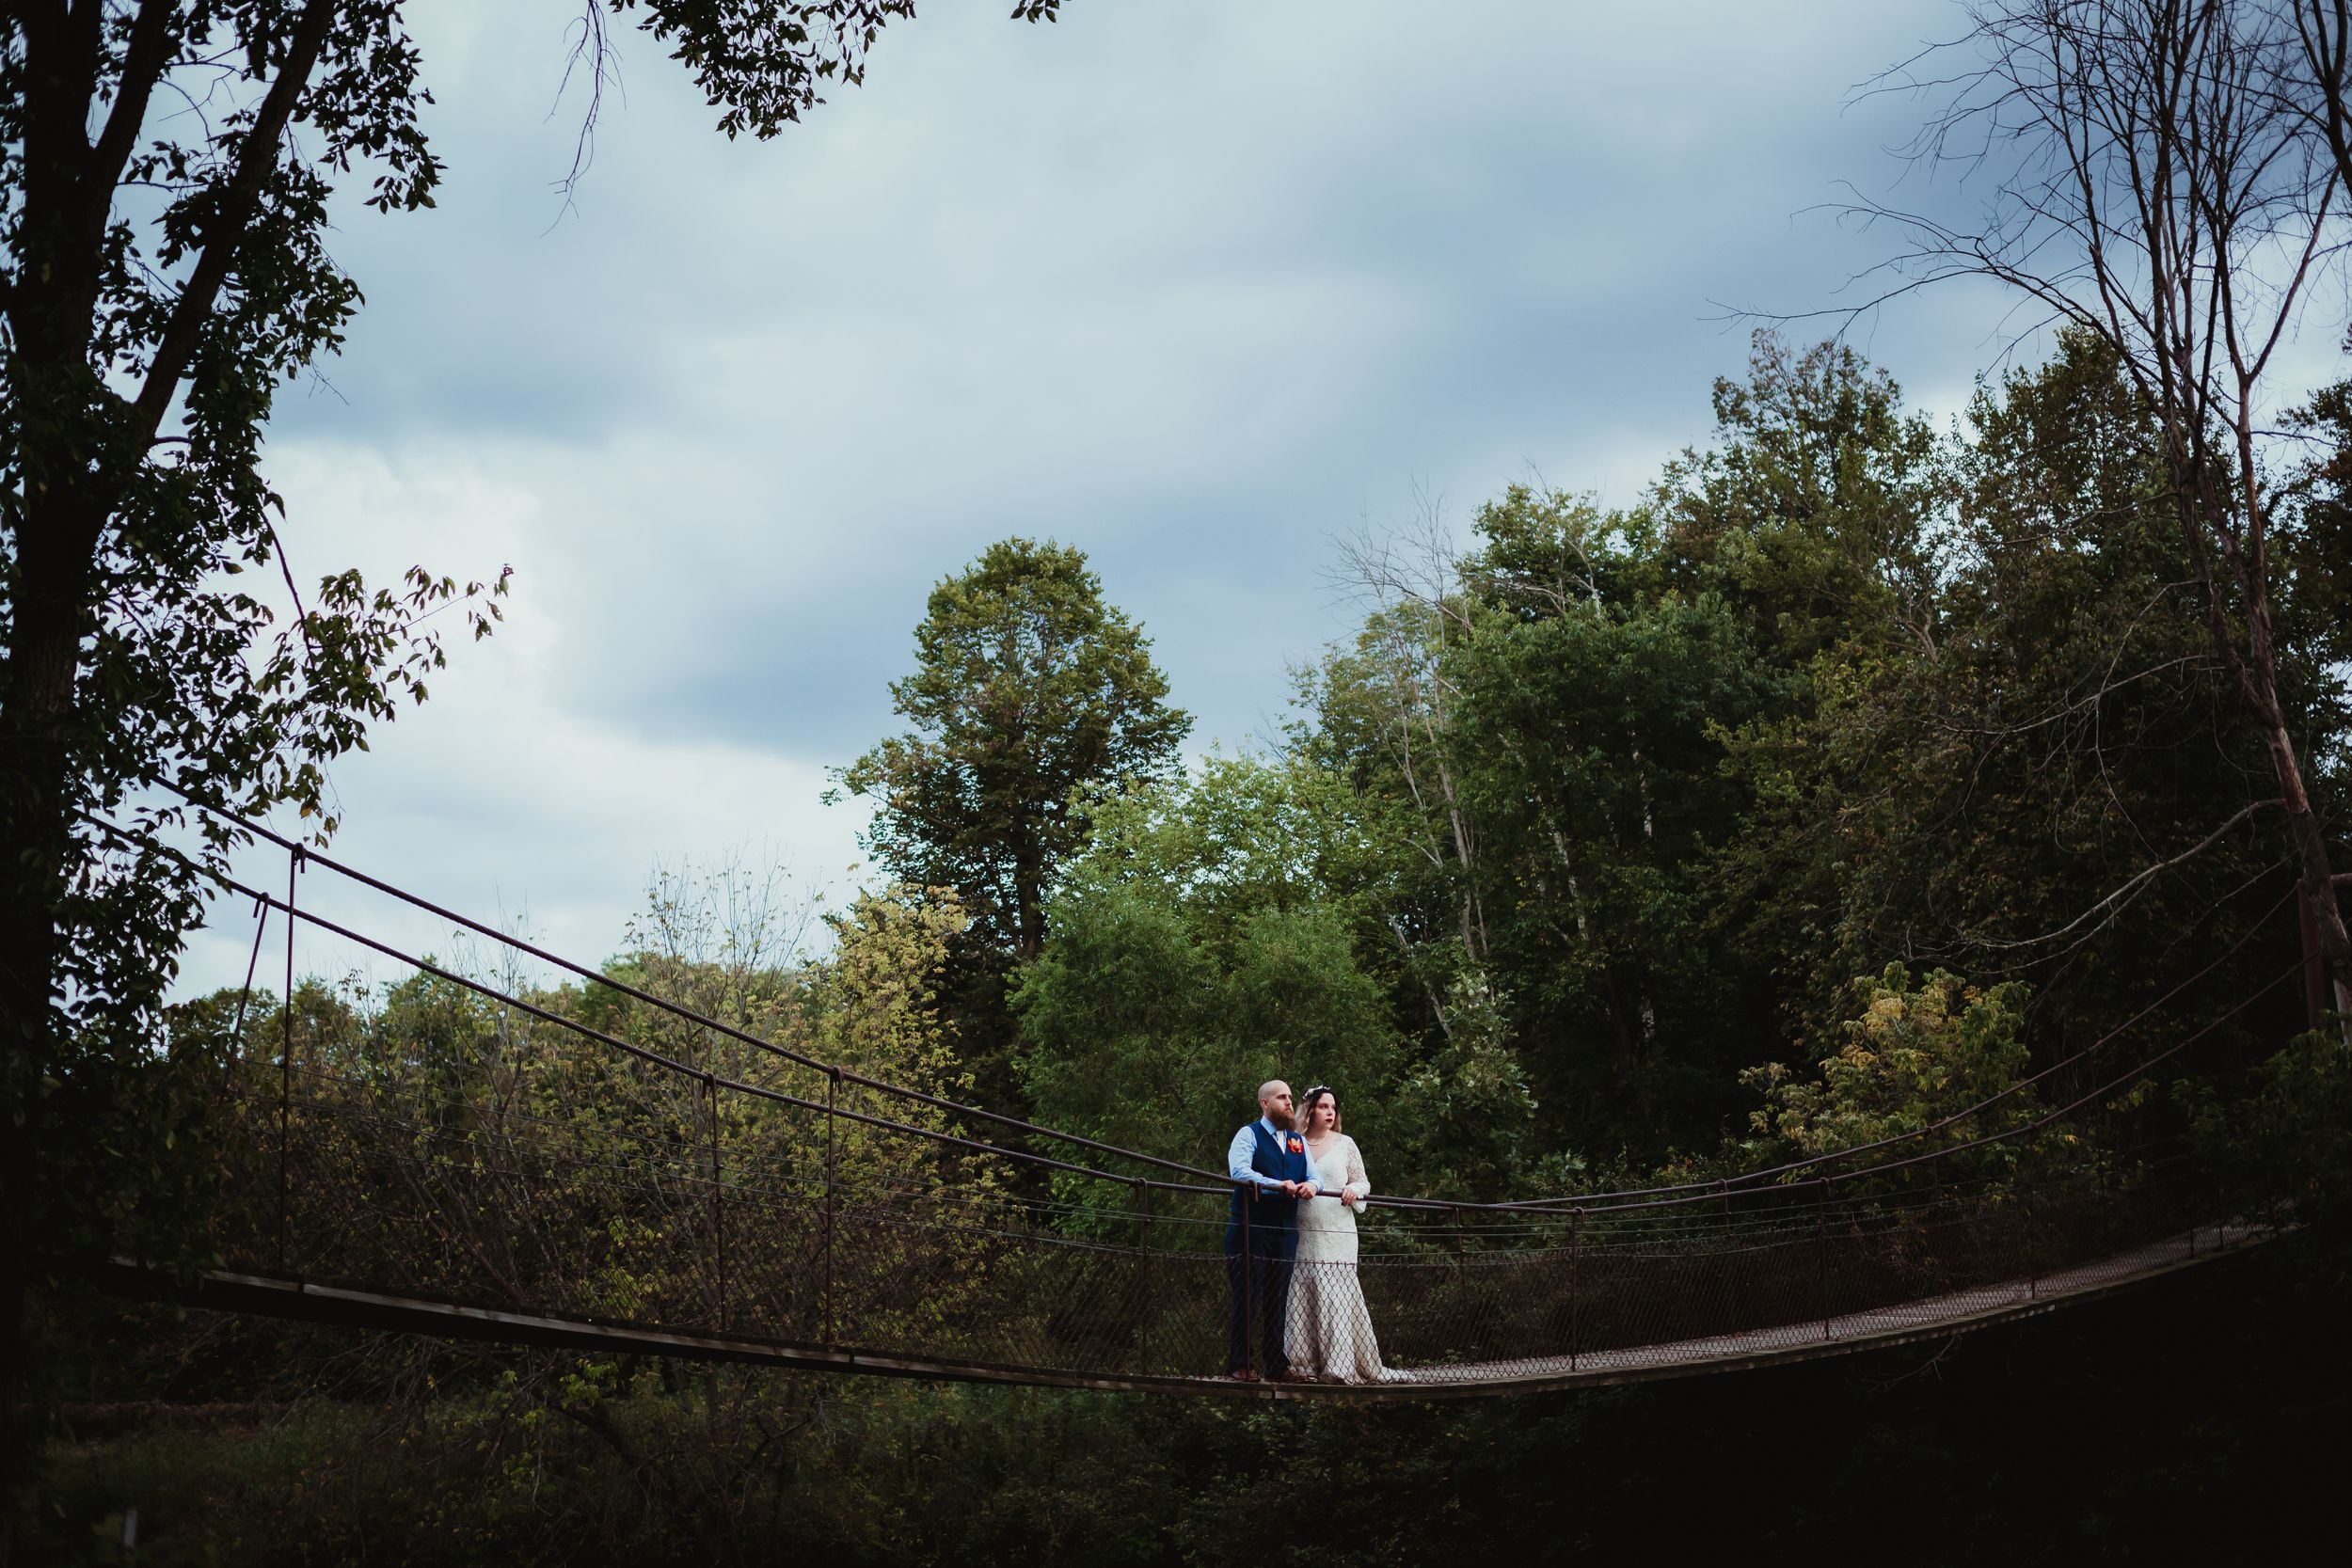 Man and woman in wedding attire standing in the middle of a swinging cable rope bridge.